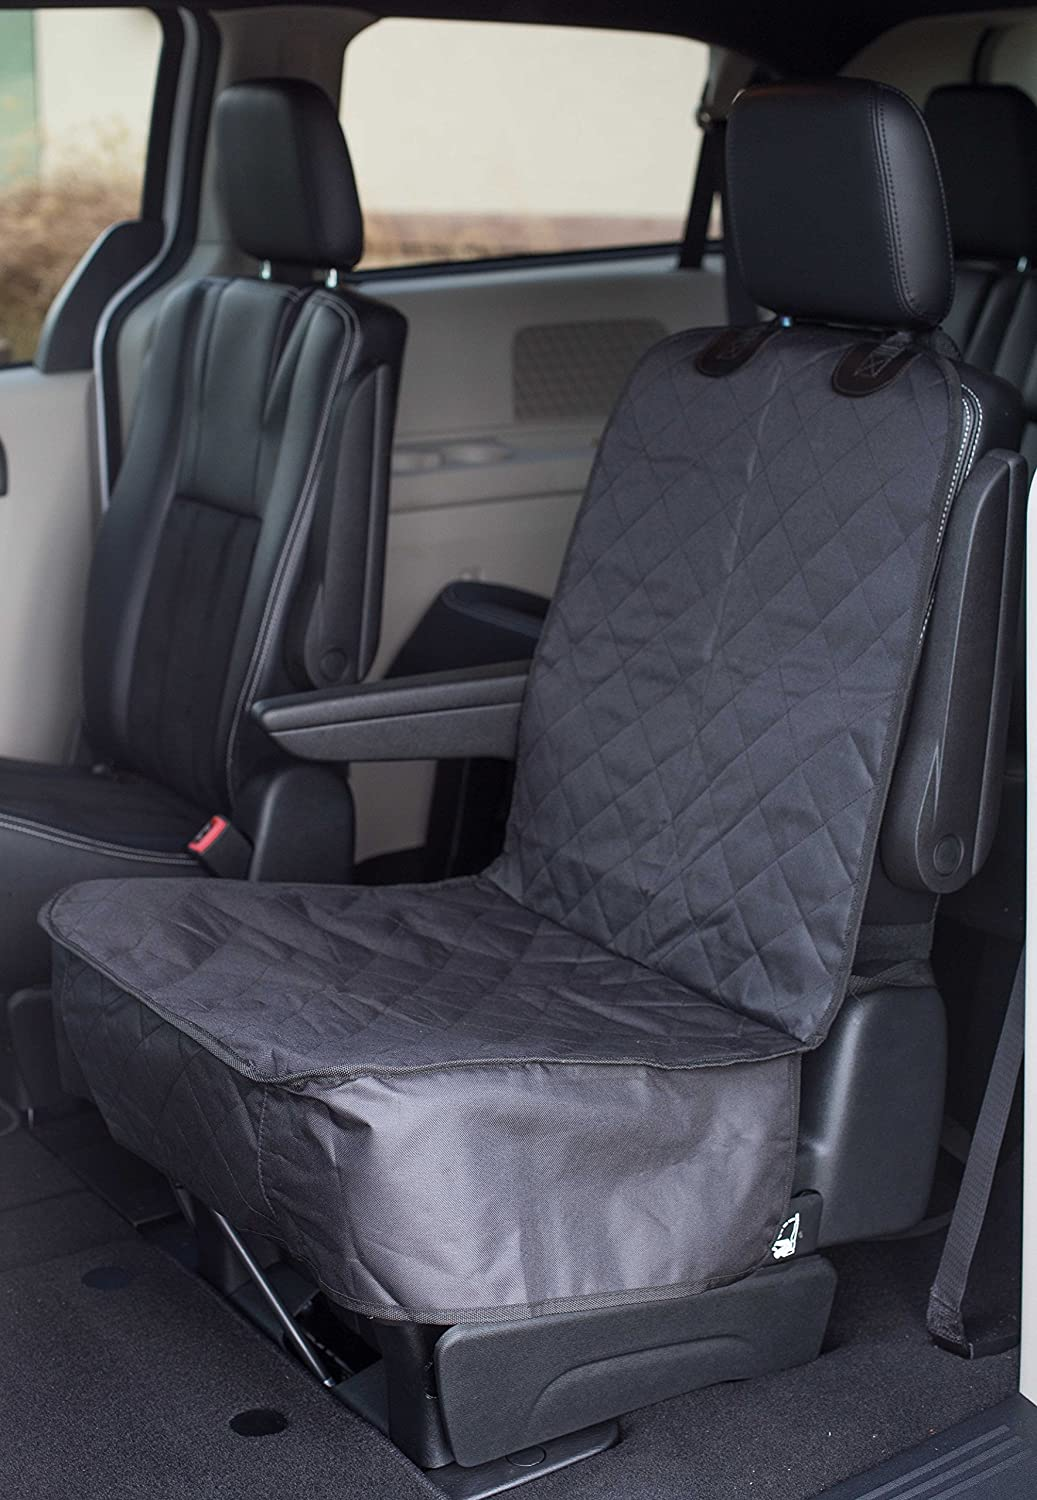 Best Car Seat Covers >> Internet S Best Seat Cover Seat Protector For Bucket Seats Protect Front Seats From Mud Dog Hair And Damp Clothes Water Resistant